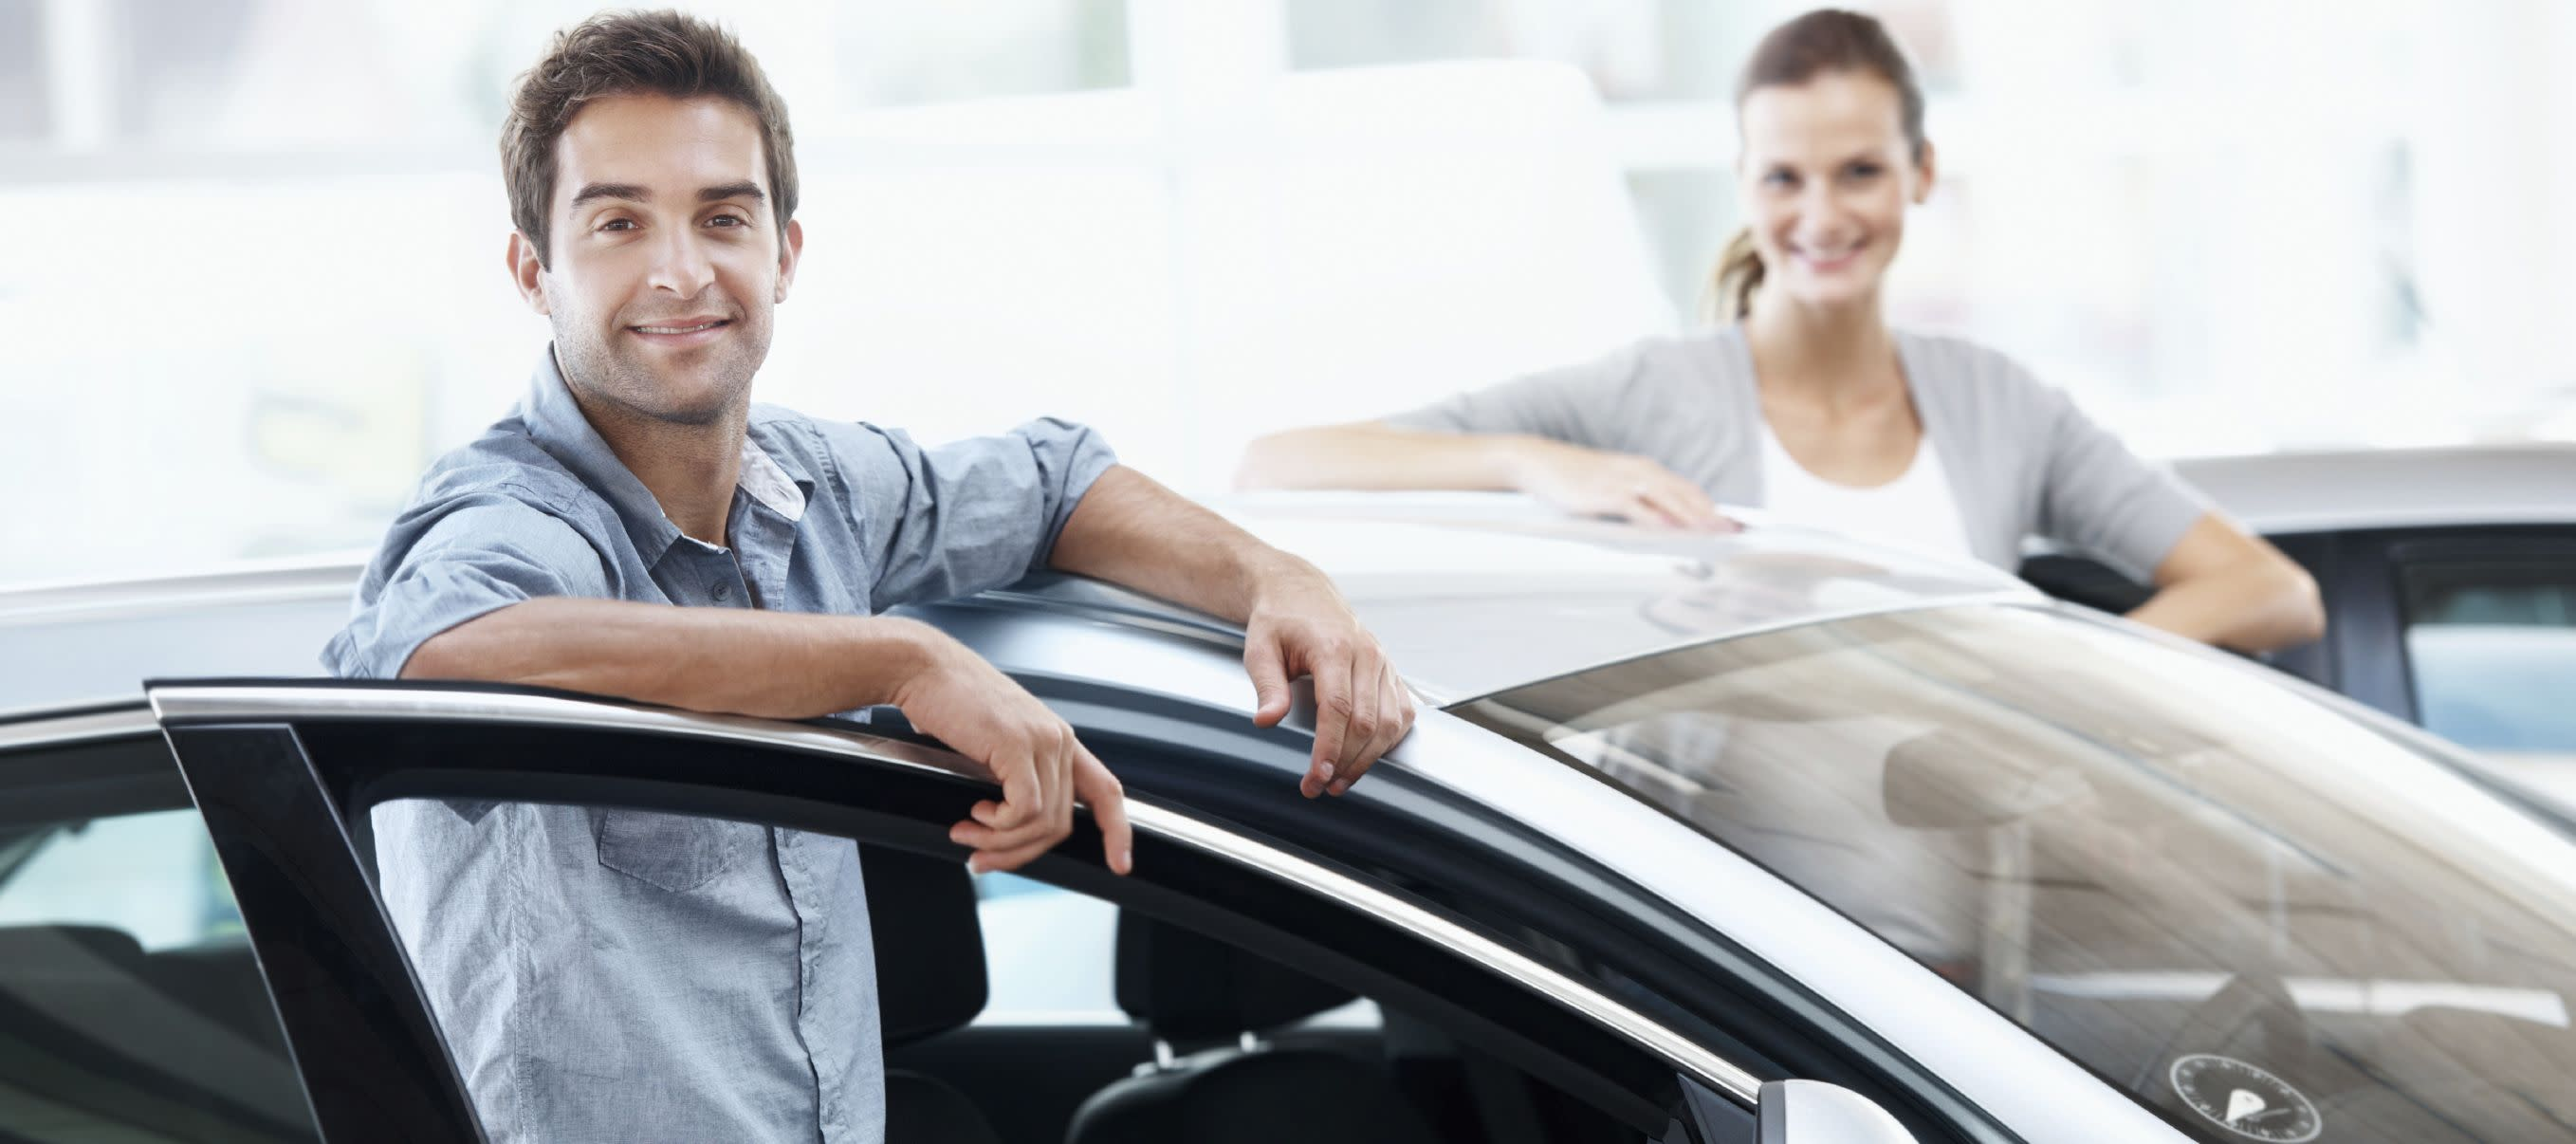 Bad Credit Auto Loan near Cicero, IL